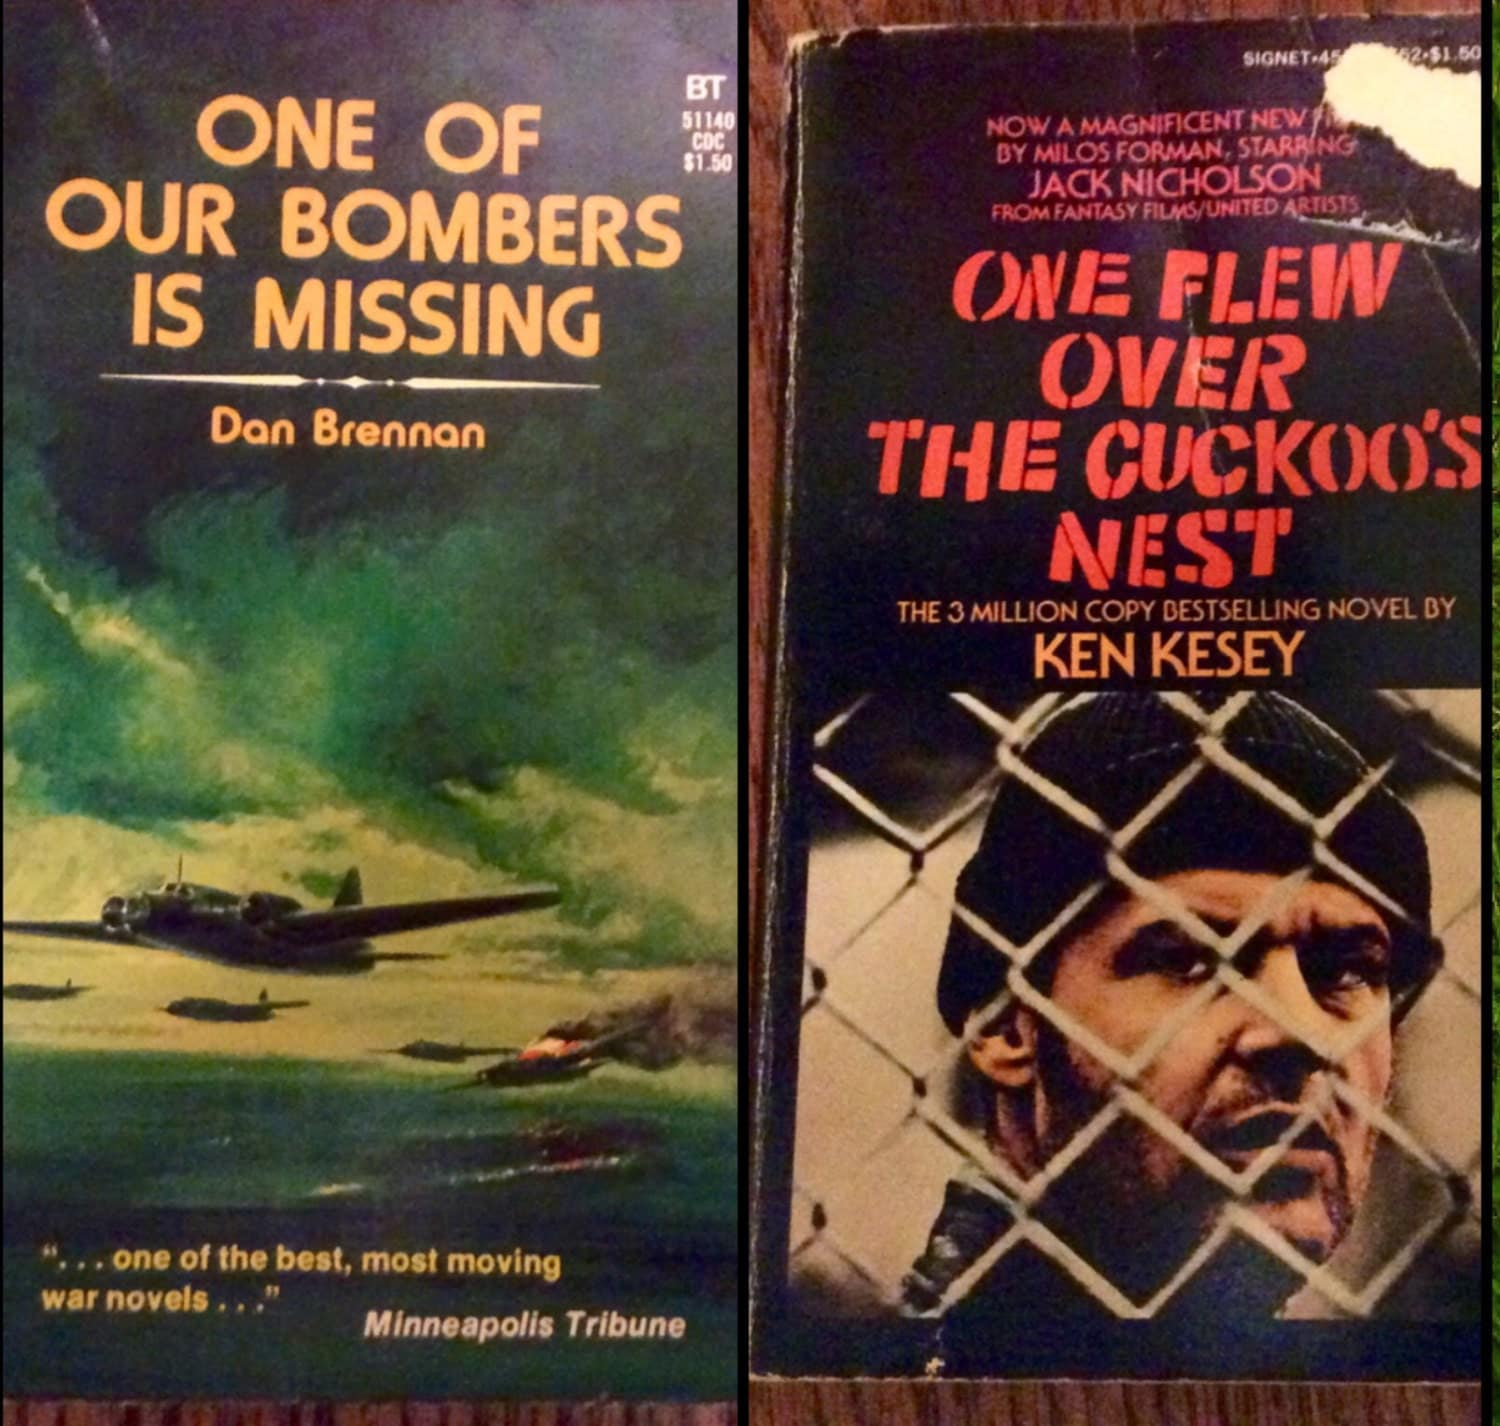 One Flew Over The Cuckoos Nest Quotes: One Flew Over The Cuckoos Nest One Of Our Bombs Is Missing